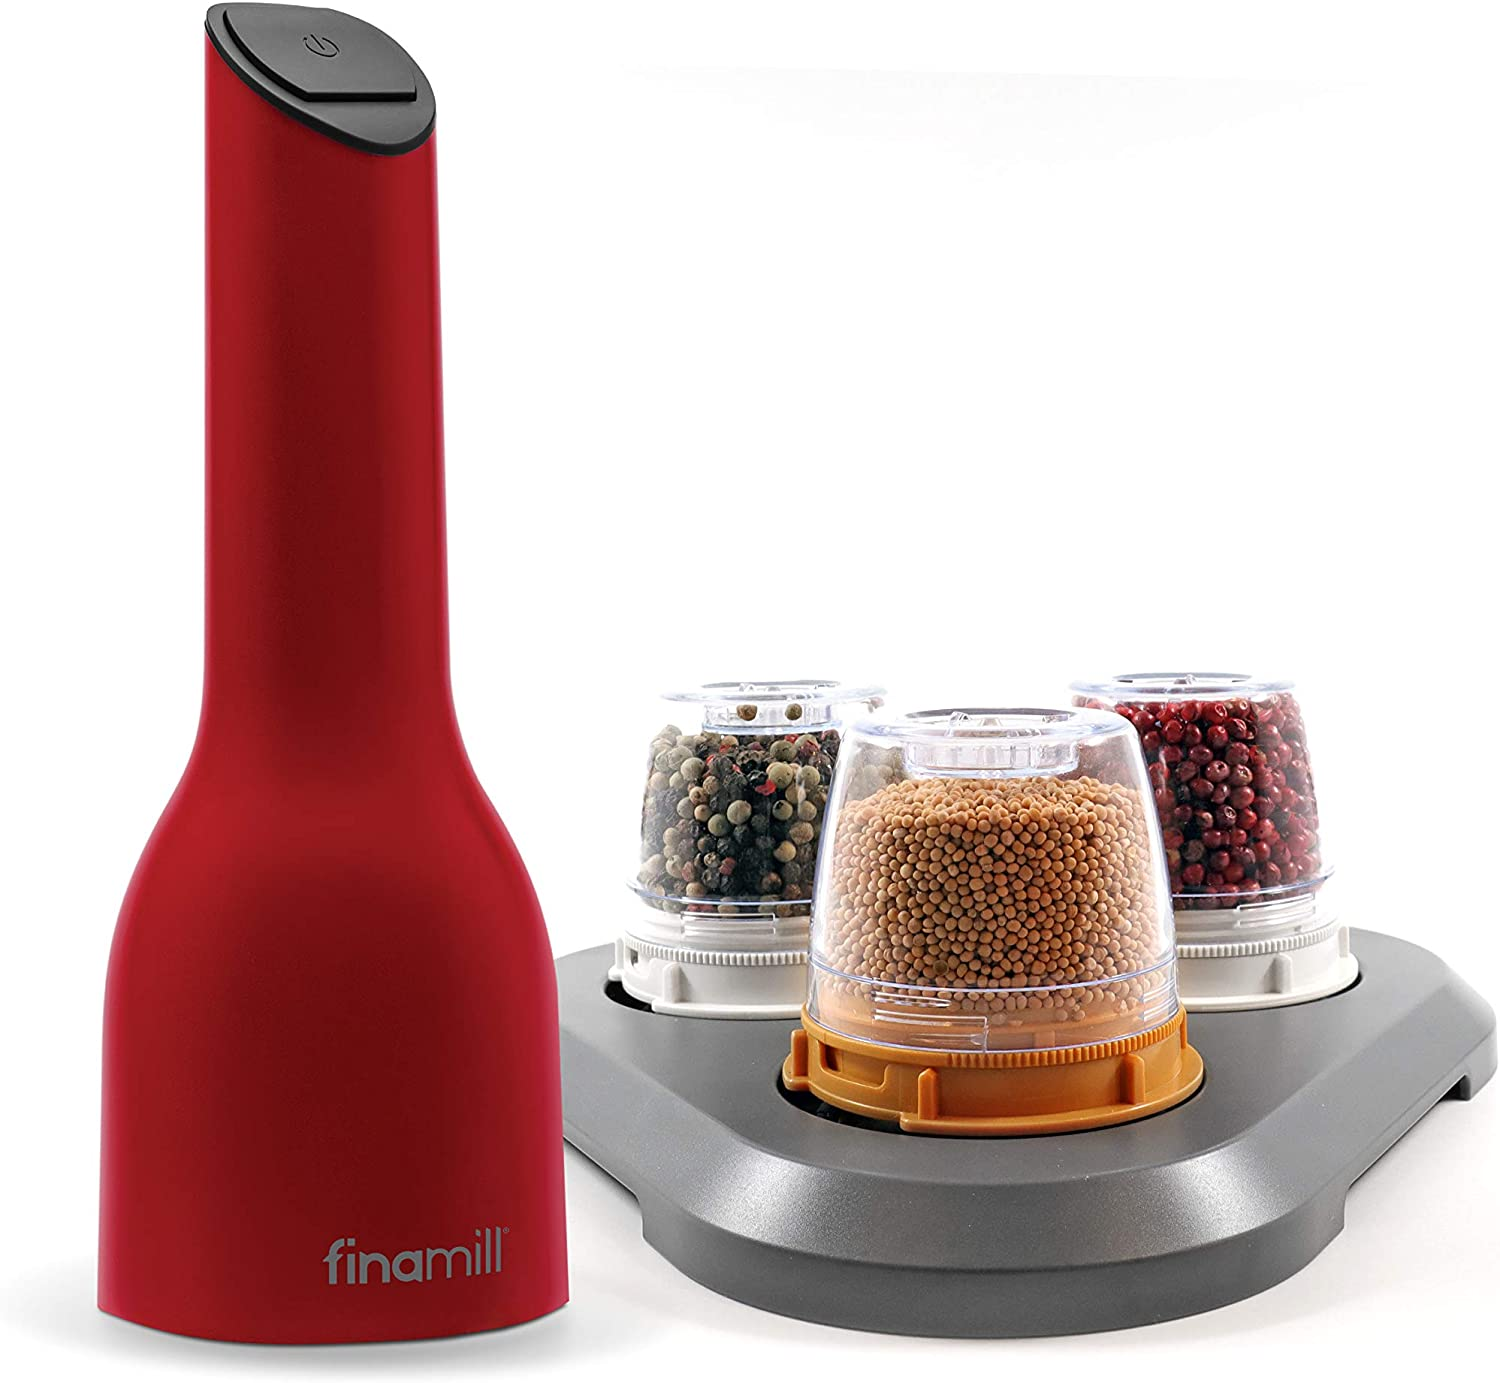 FinaMill - Award Winning Battery Operated Spice Grinder Gift Pack - includes 3 Quick-Change Spice Pods and 1 Stackable Tray-Perfect Gift For any Home Chef_ Cherry Red